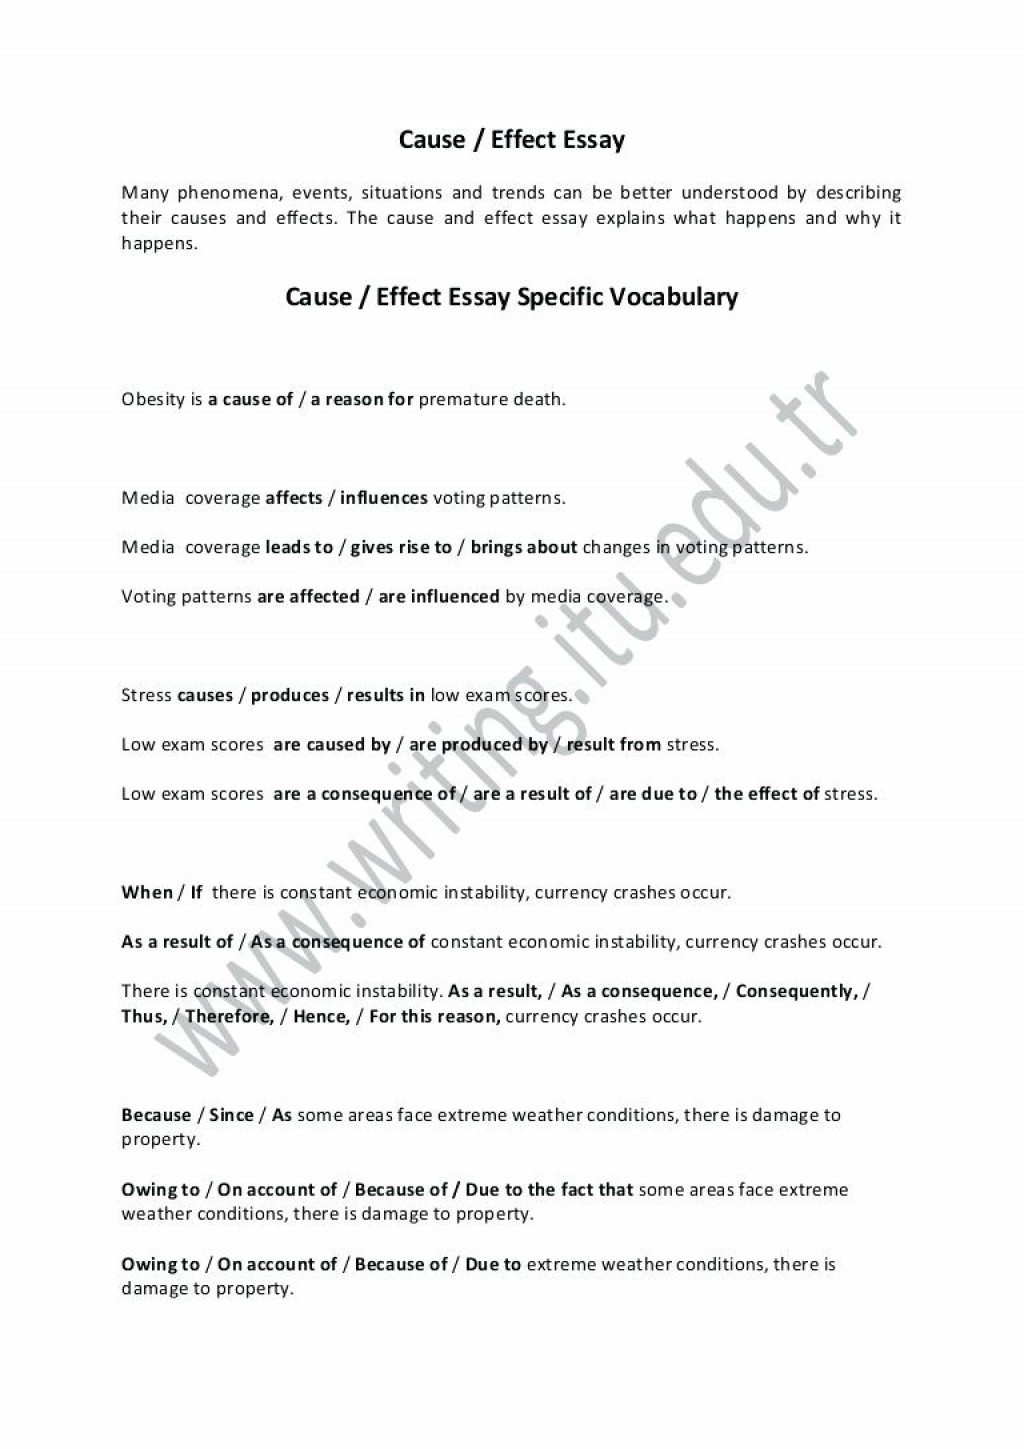 012 Essay Question Examples Example Cause And Effect Outline Resume Thesis Statement Rare English Extended Sat Prompts Questions Ielts Large